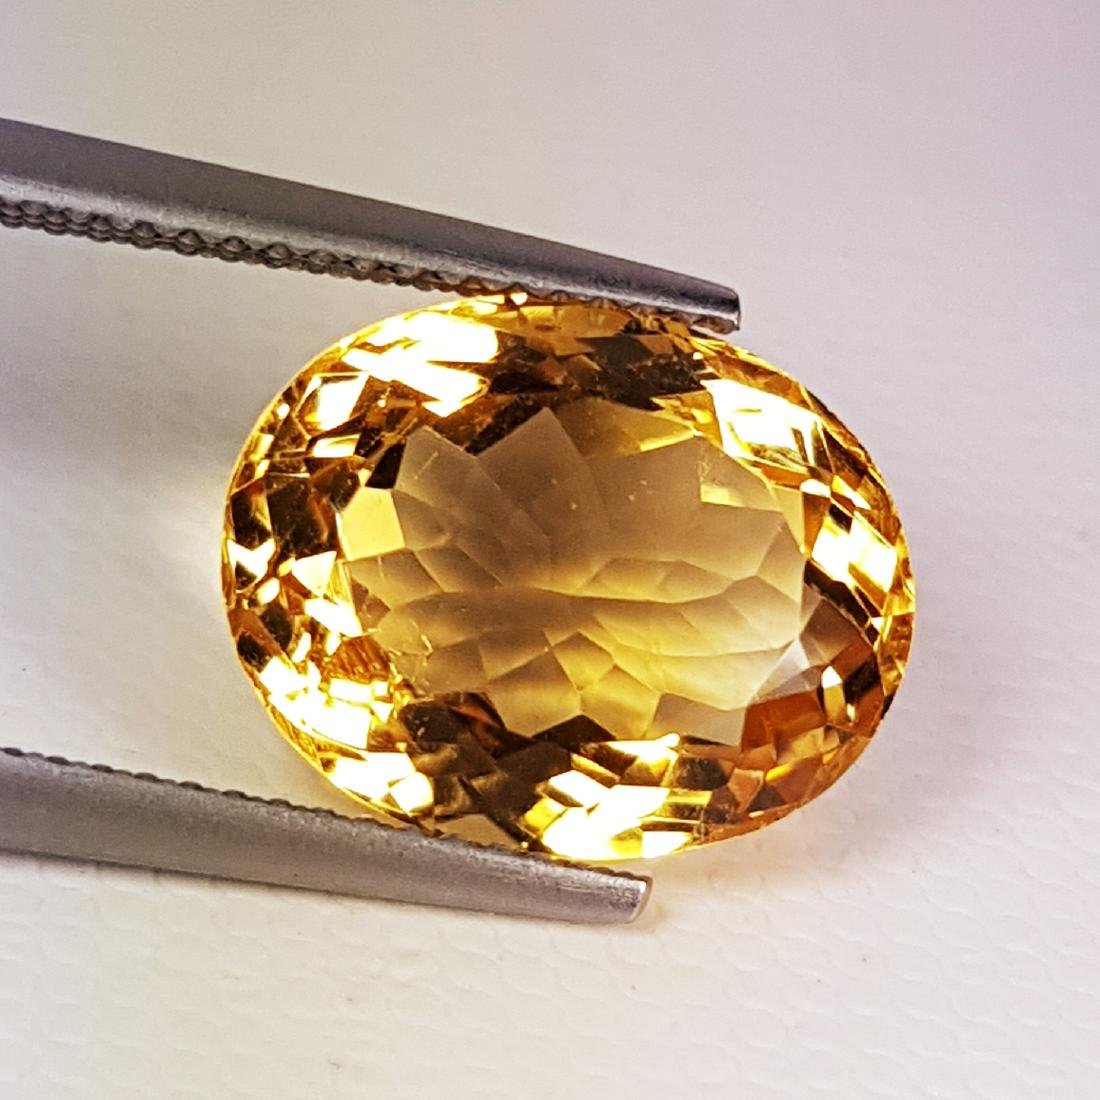 7.33 ct AAA Top Grade Oval Cut Natural Citrine